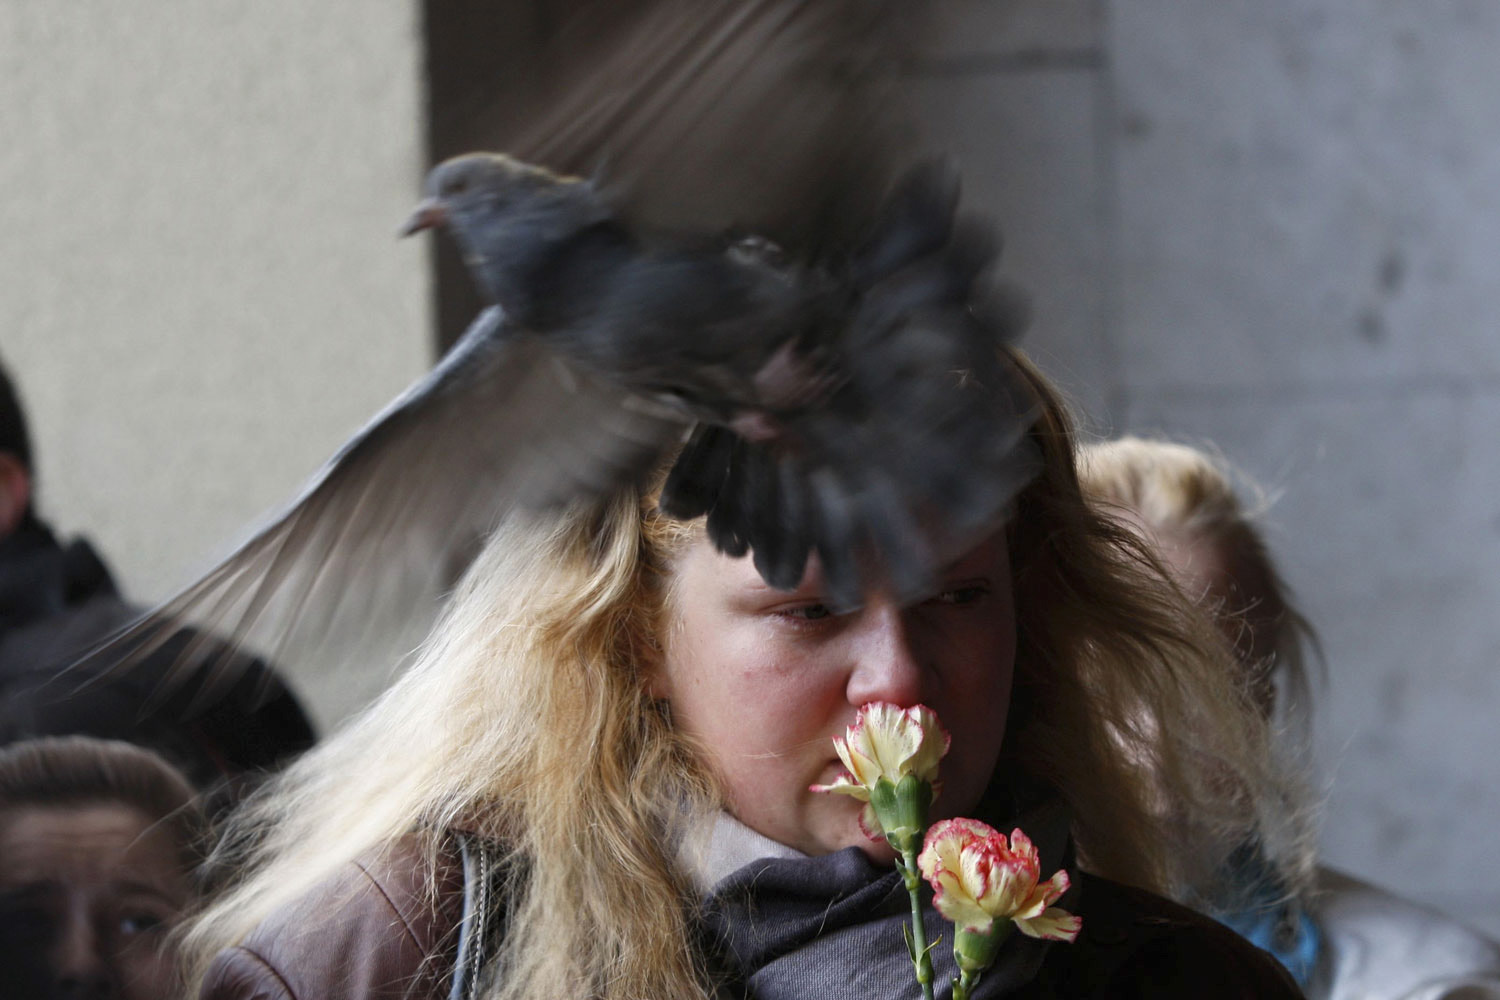 April 12, 2011. A woman mourns as a bird passes by her at the entrance to the Oktyabrskaya station of the Minsk subway in Belarus. The Belarusian government said a bomb placed under a bench at the subway station exploded on April 11 as people were riding the trains during the evening rush hour. Twelve were killed.